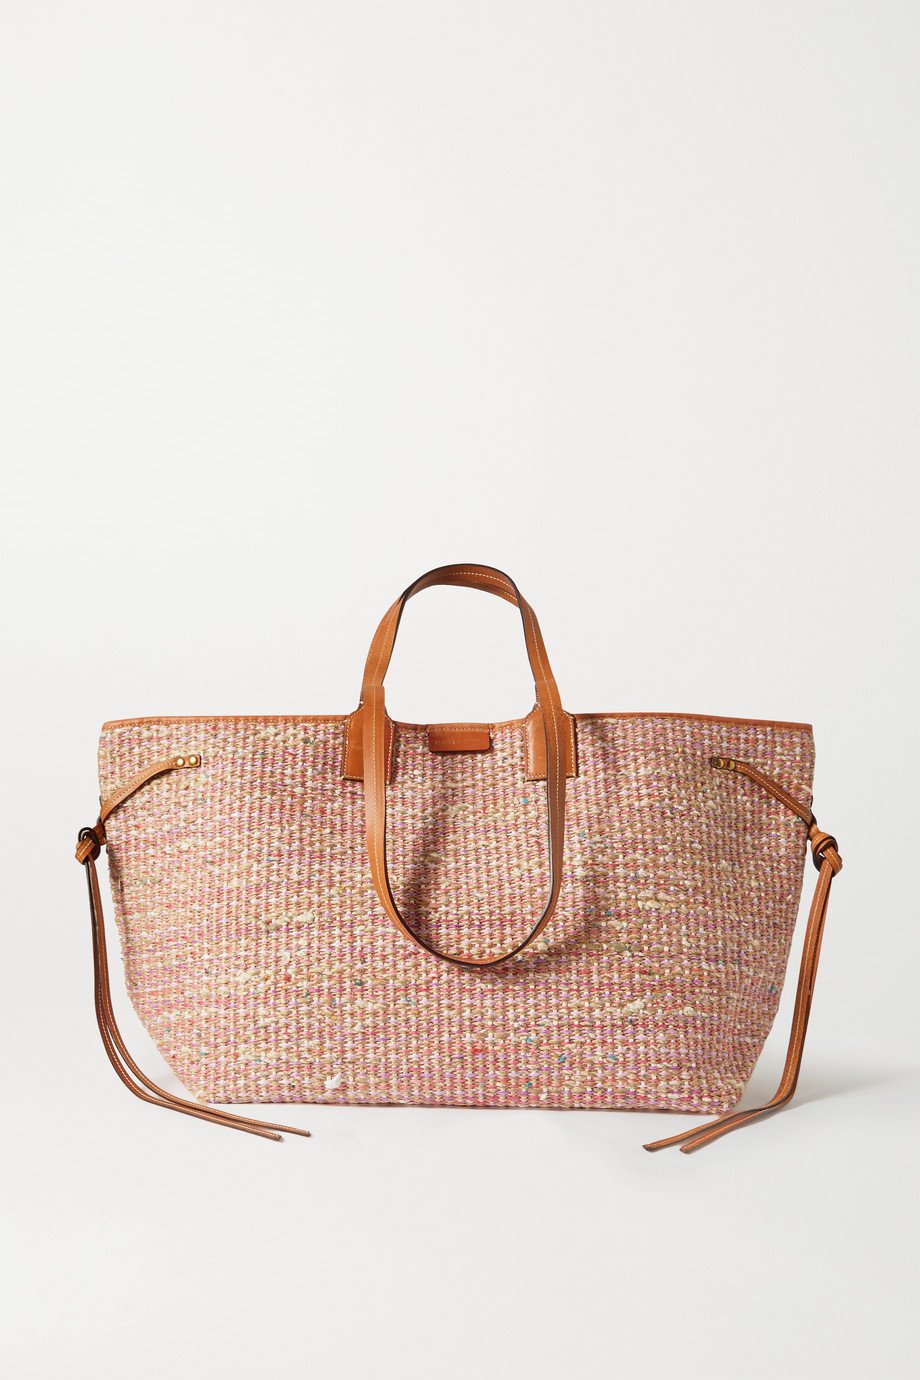 이자벨 마랑 Isabel Marant Wydra leather-trimmed straw tote,Orange